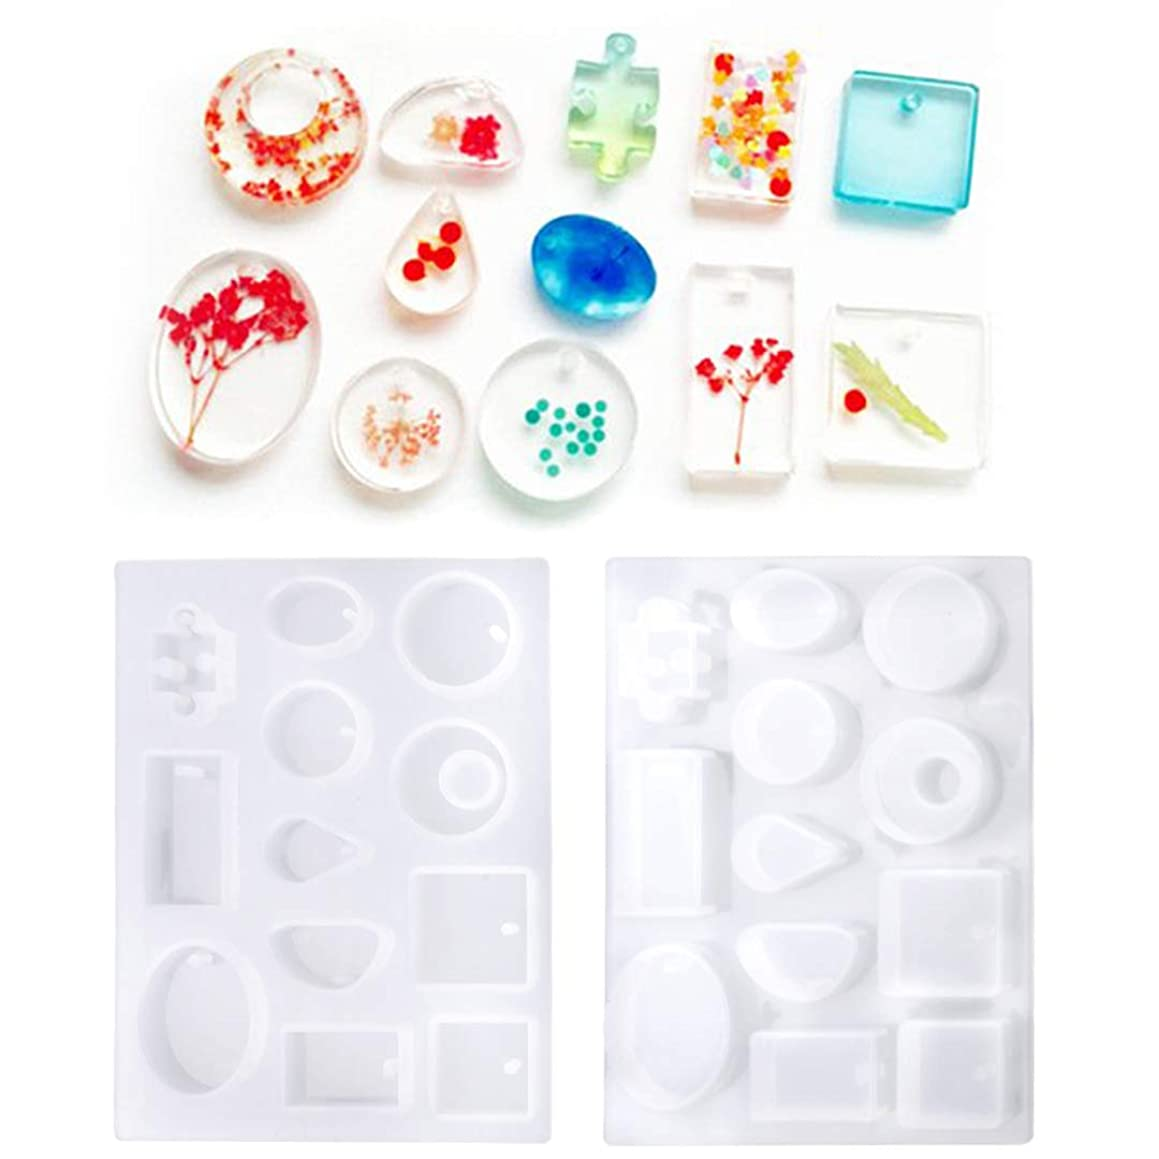 DIY Silicone Mold Jewelry with Hanging Hole for Craft Making Mould Handmade Tool